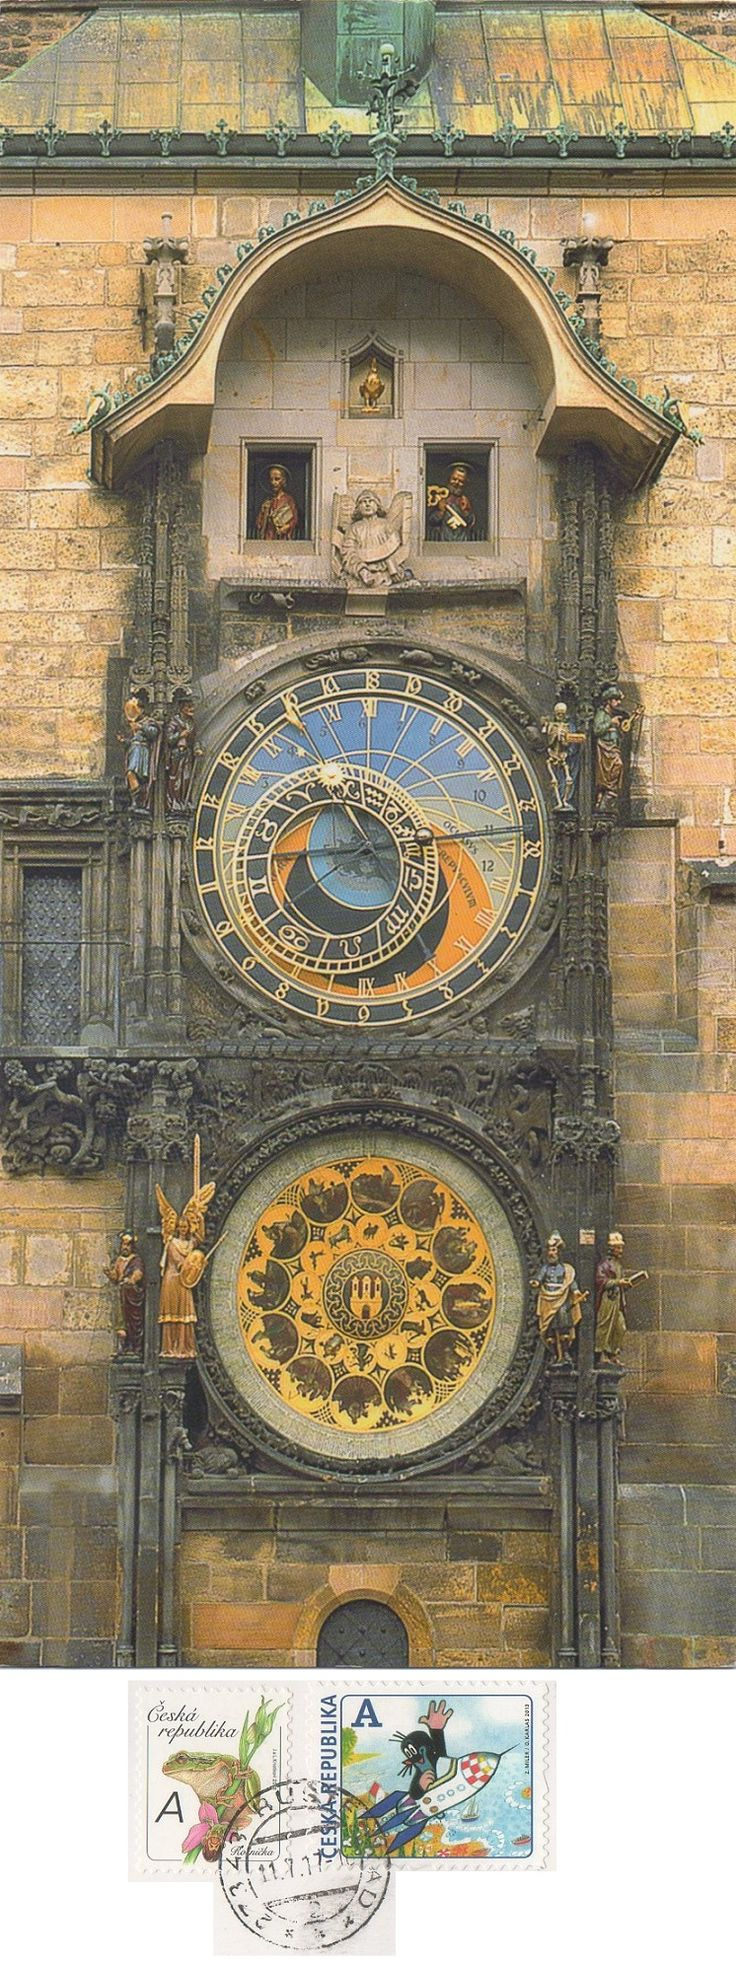 Swap - Arrived: 2017.07.14 ---   The Prague astronomical clock, or Prague orloj  is a medieval astronomical clock located in Prague, the capital of the Czech Republic.  The clock was first installed in 1410, making it the third-oldest astronomical clock in the world and the oldest one still operating.